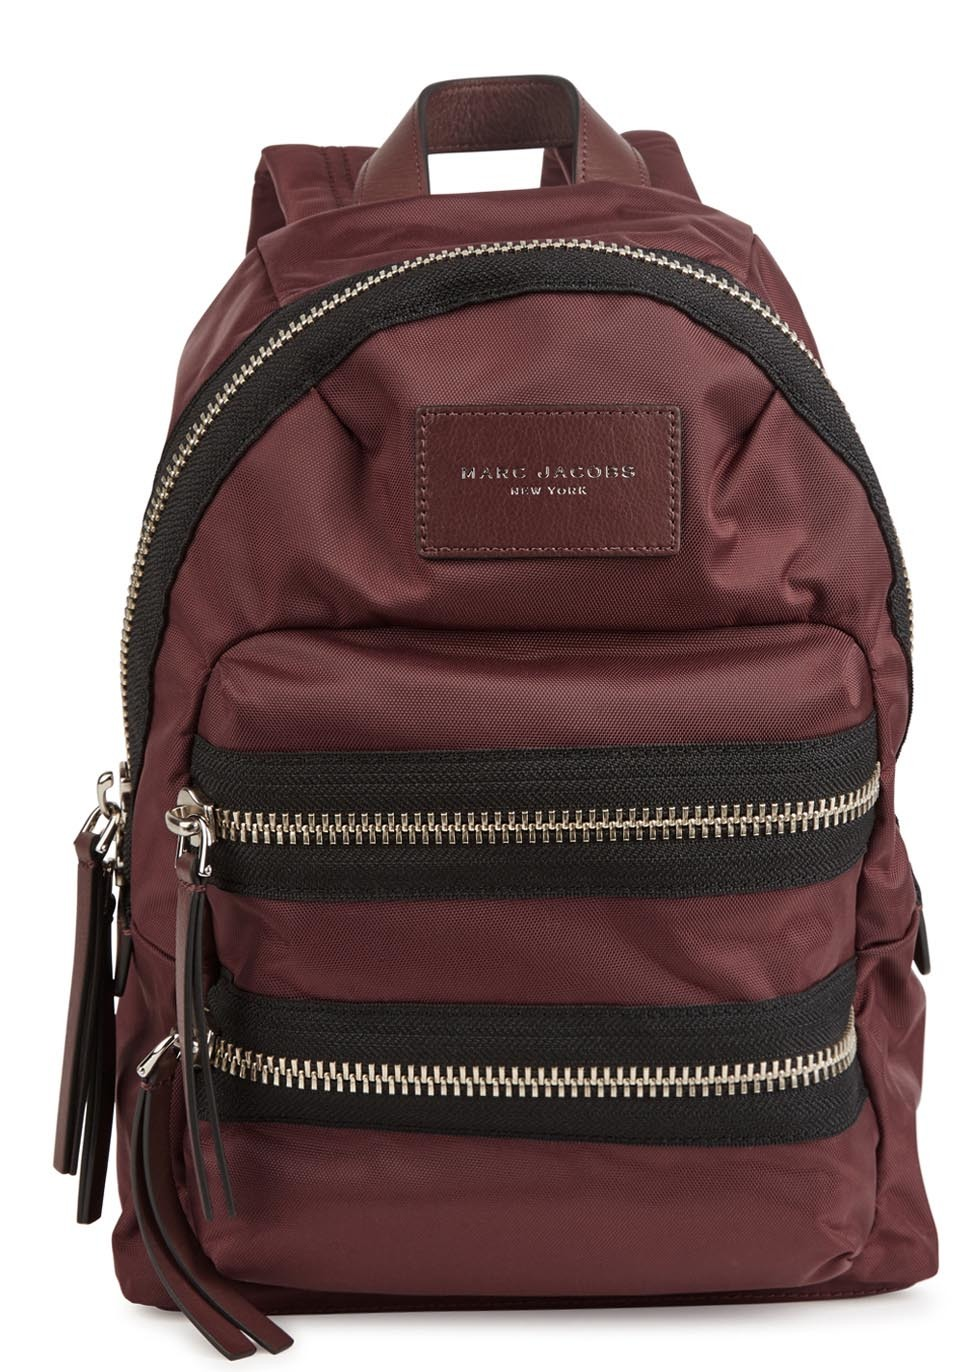 Mini Burgundy Woven Backpack - predominant colour: burgundy; occasions: casual, holiday; type of pattern: standard; style: rucksack; length: rucksack; size: standard; material: fabric; embellishment: zips; pattern: plain; finish: plain; season: s/s 2016; wardrobe: highlight